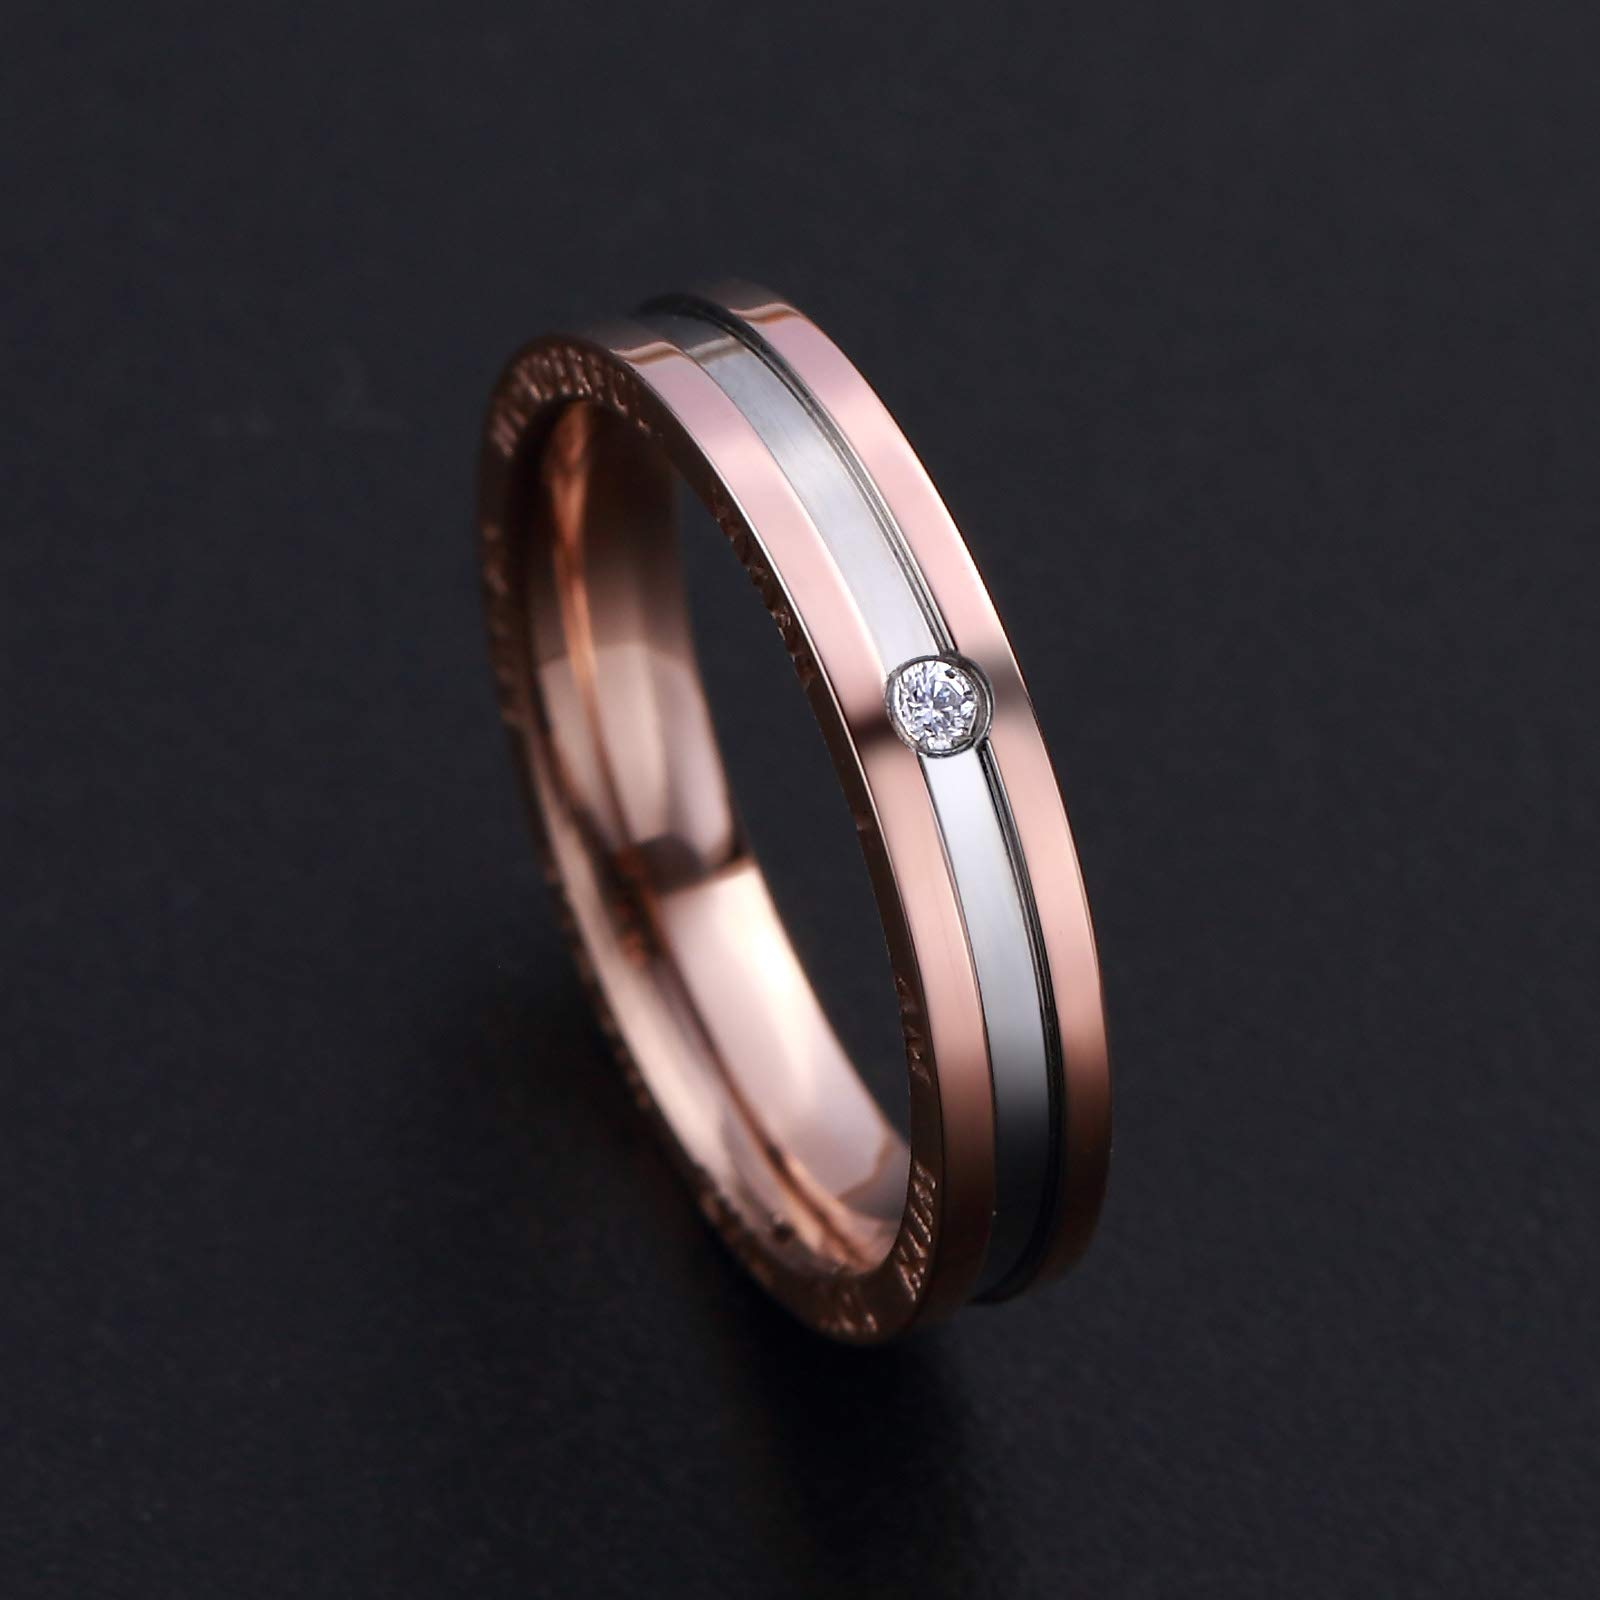 Dec.bells Silver Rose Gold Two Tone Stainless Steel Promise Ring Band Small Ring for Her (Size 5) by Dec.bells (Image #5)